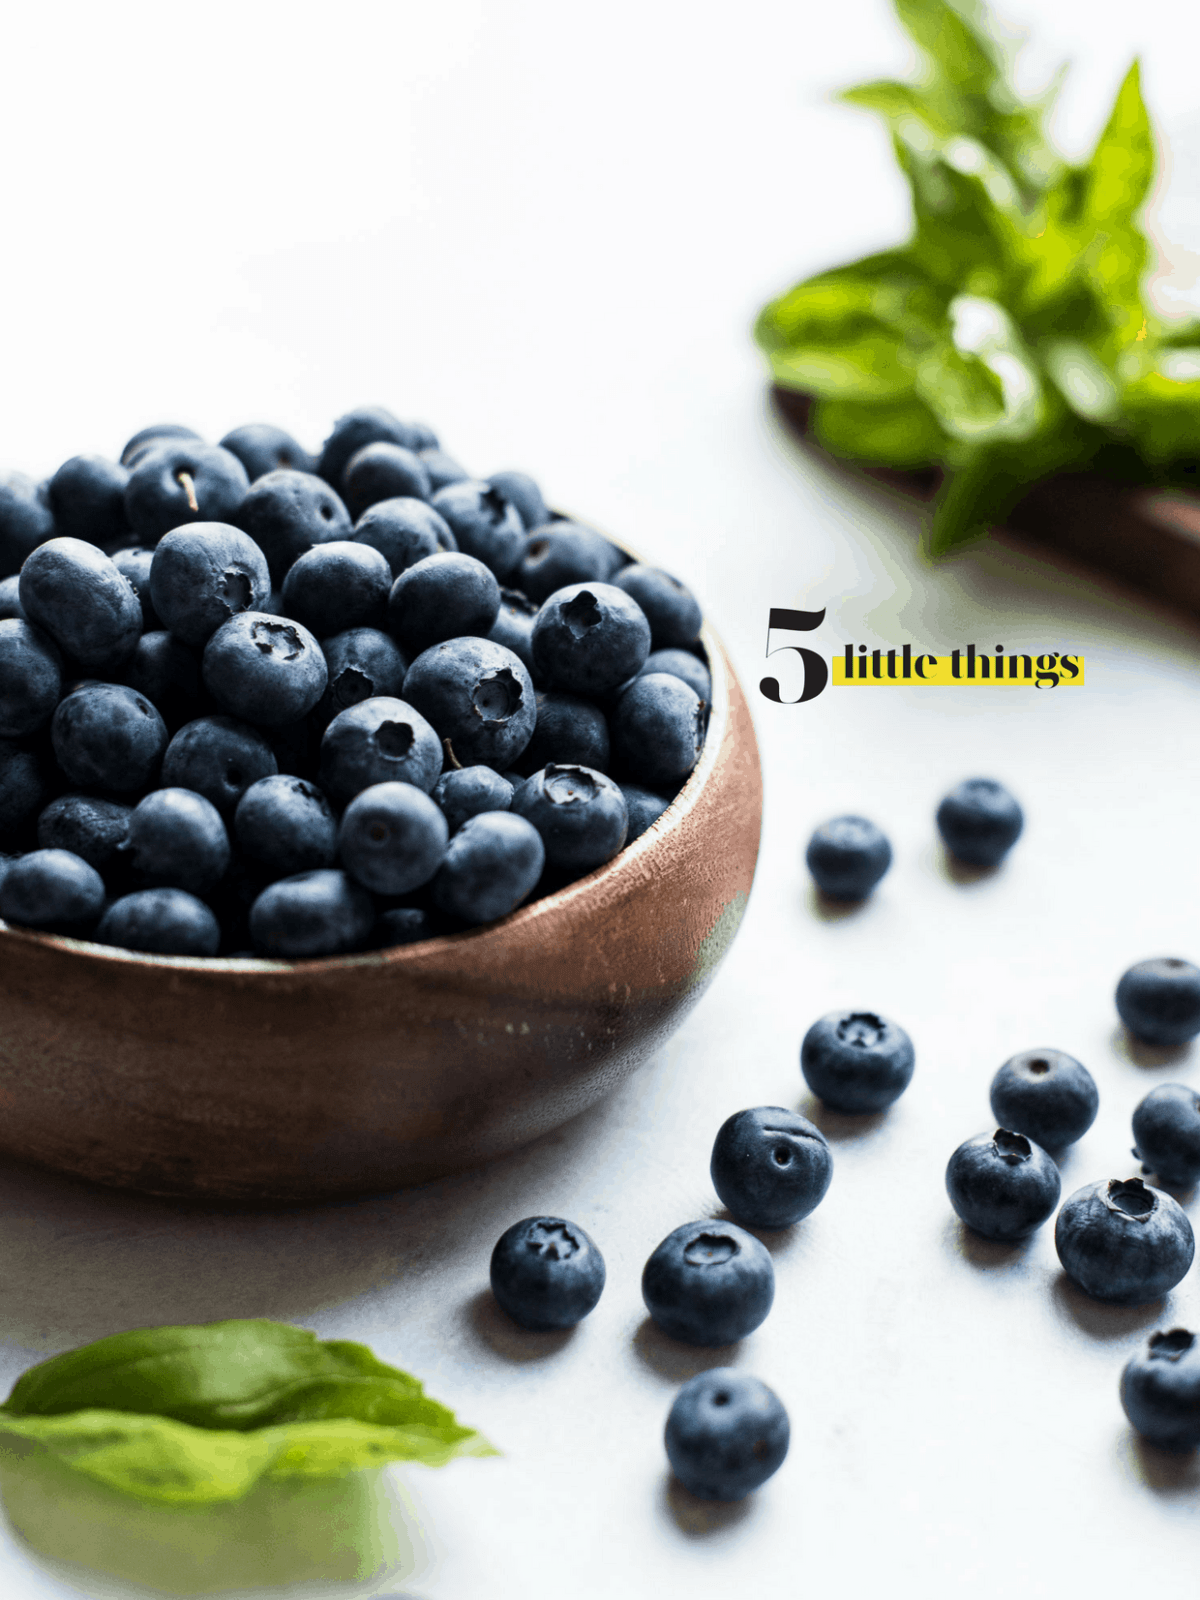 Wooden bowl of blueberries with blueberries on the counter.